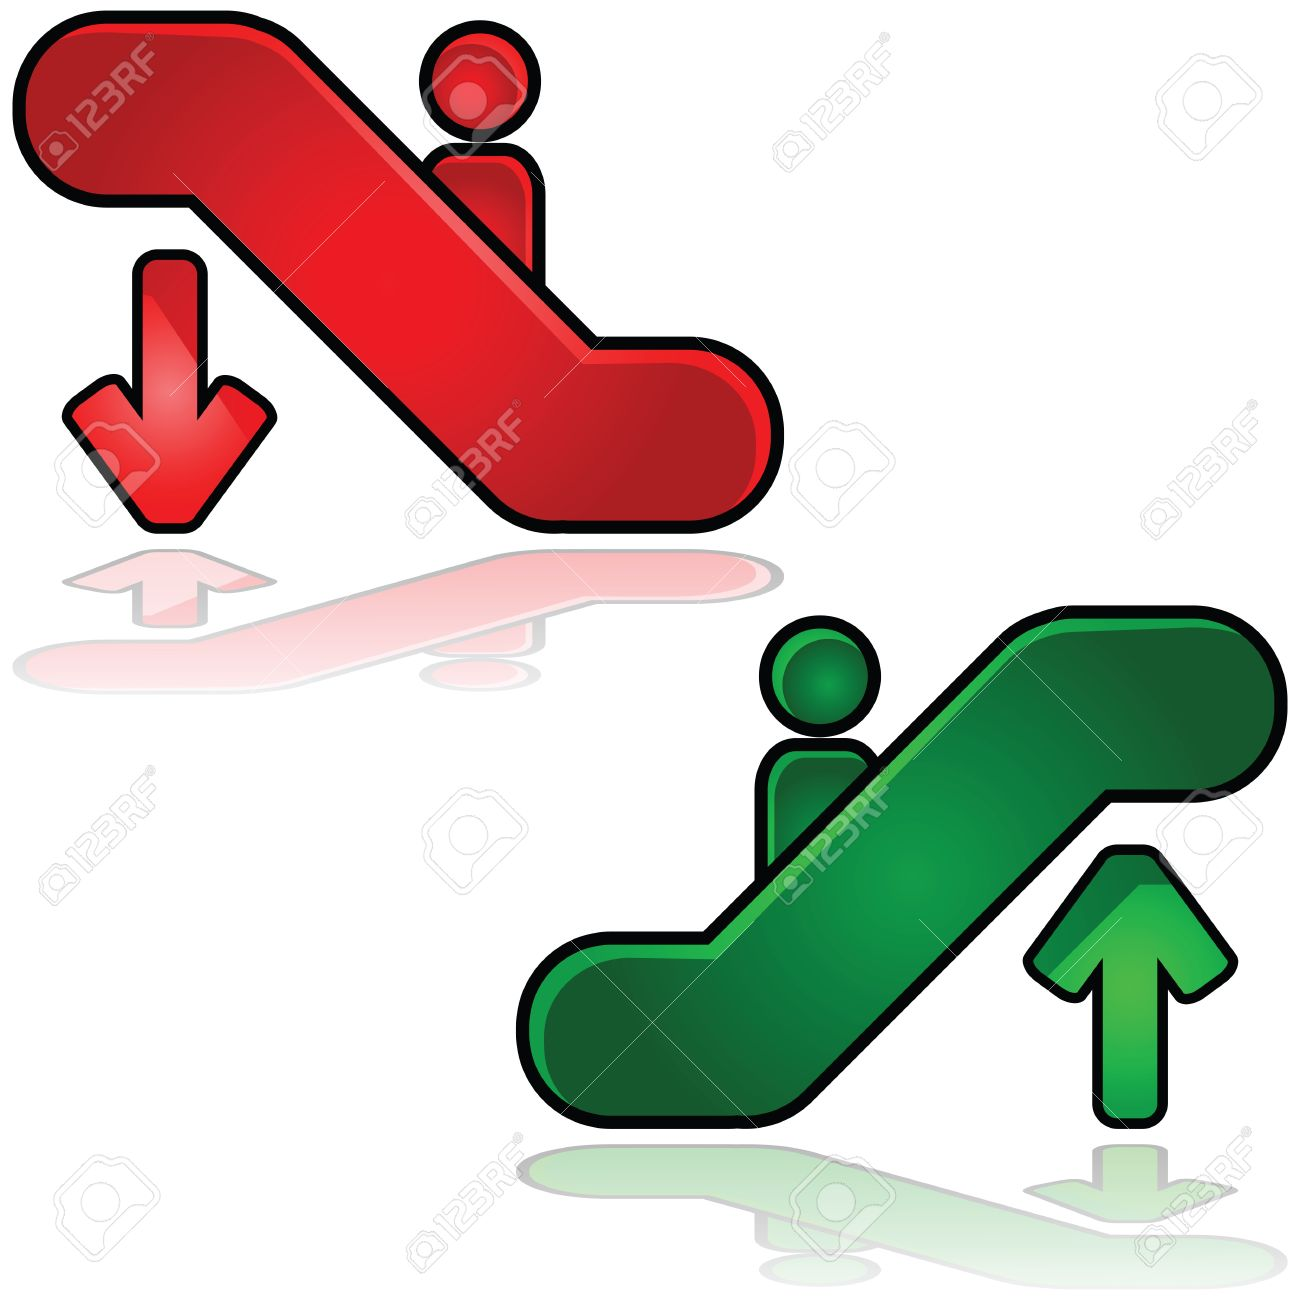 Glossy illustration of escalators signs: one going up and another down Stock Vector - 10085184